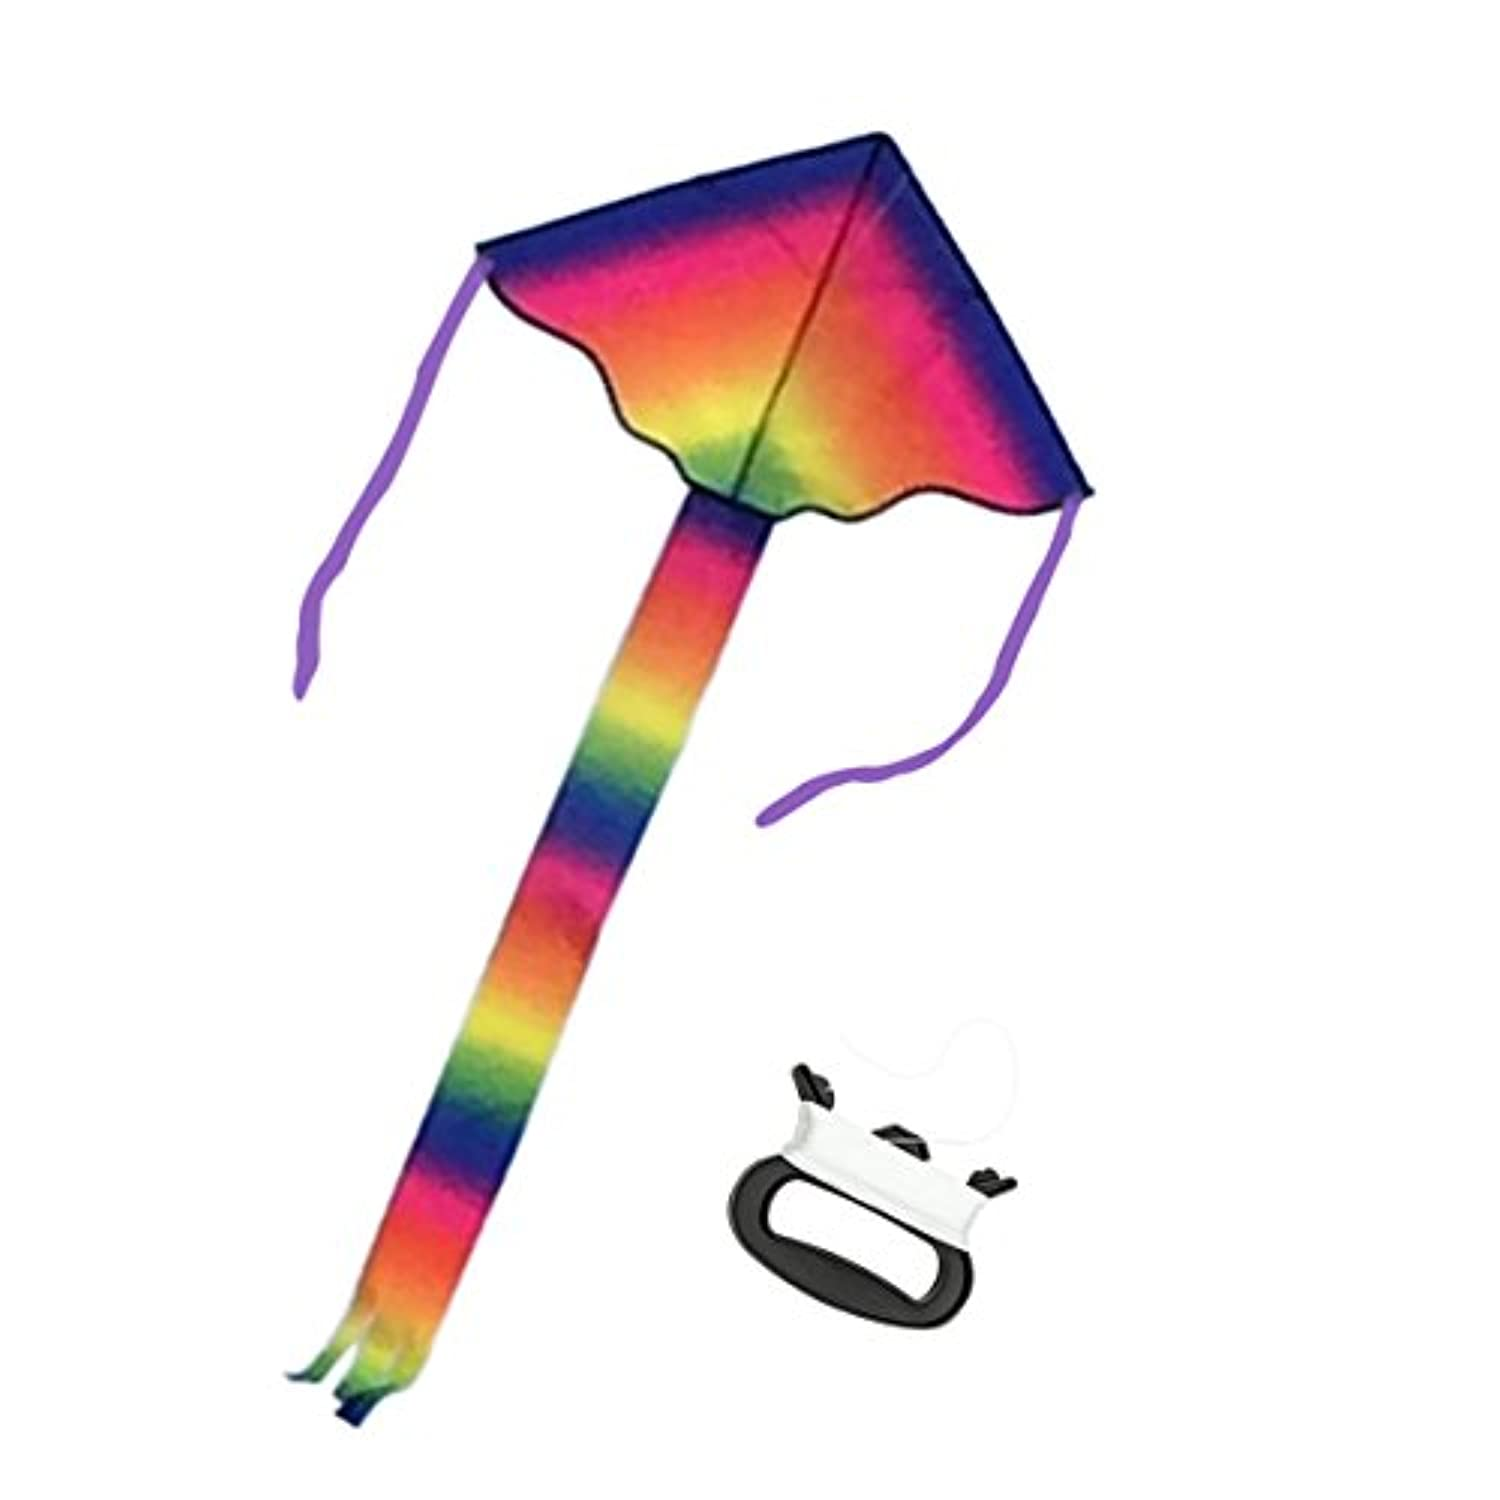 Wings Rainbow Flying Delta Kite、簡単flyer- Great初心者Kite ( Includes Kite Line )